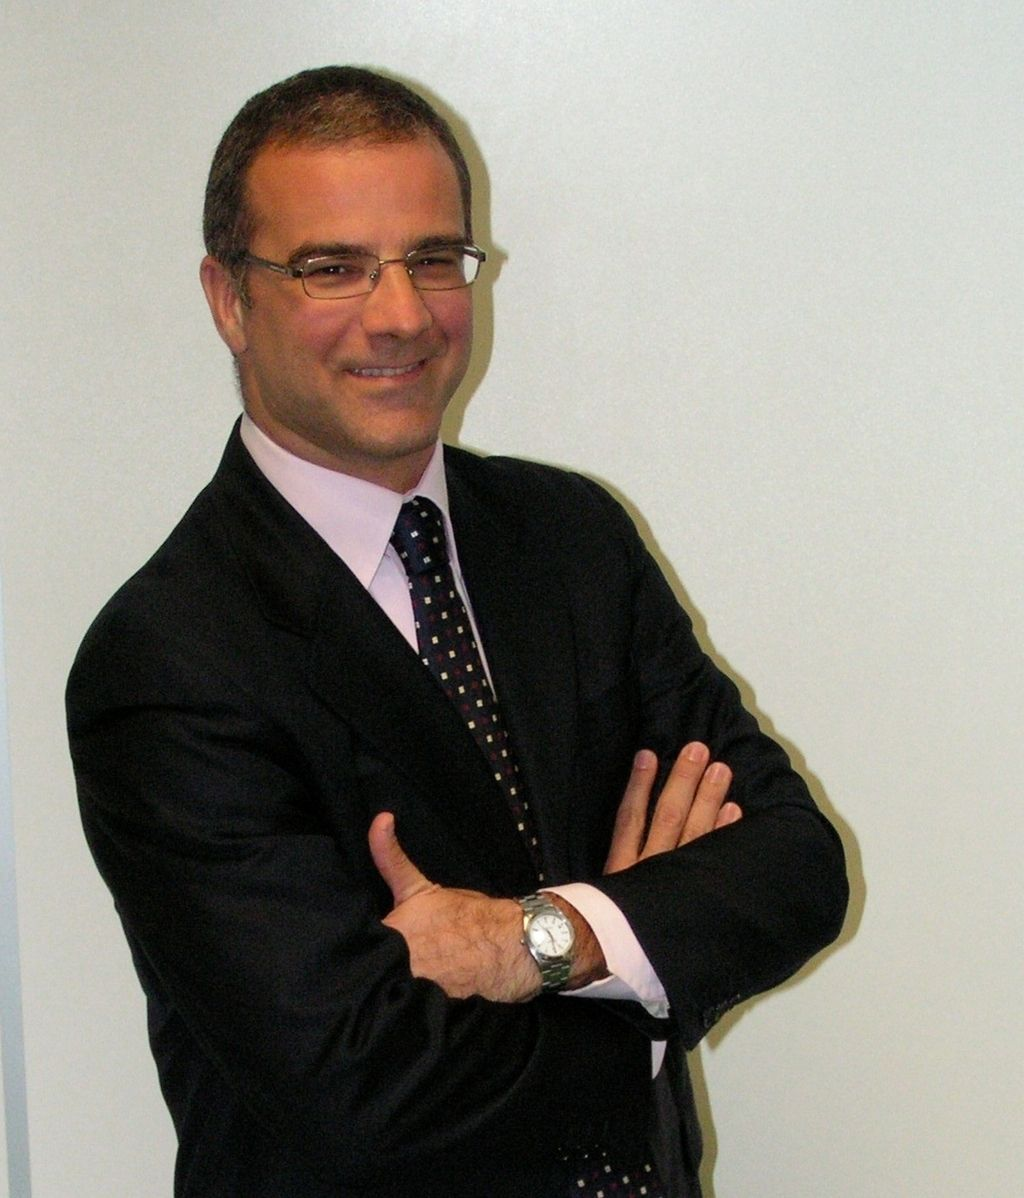 Alejandro Martínez, director general Publiseis